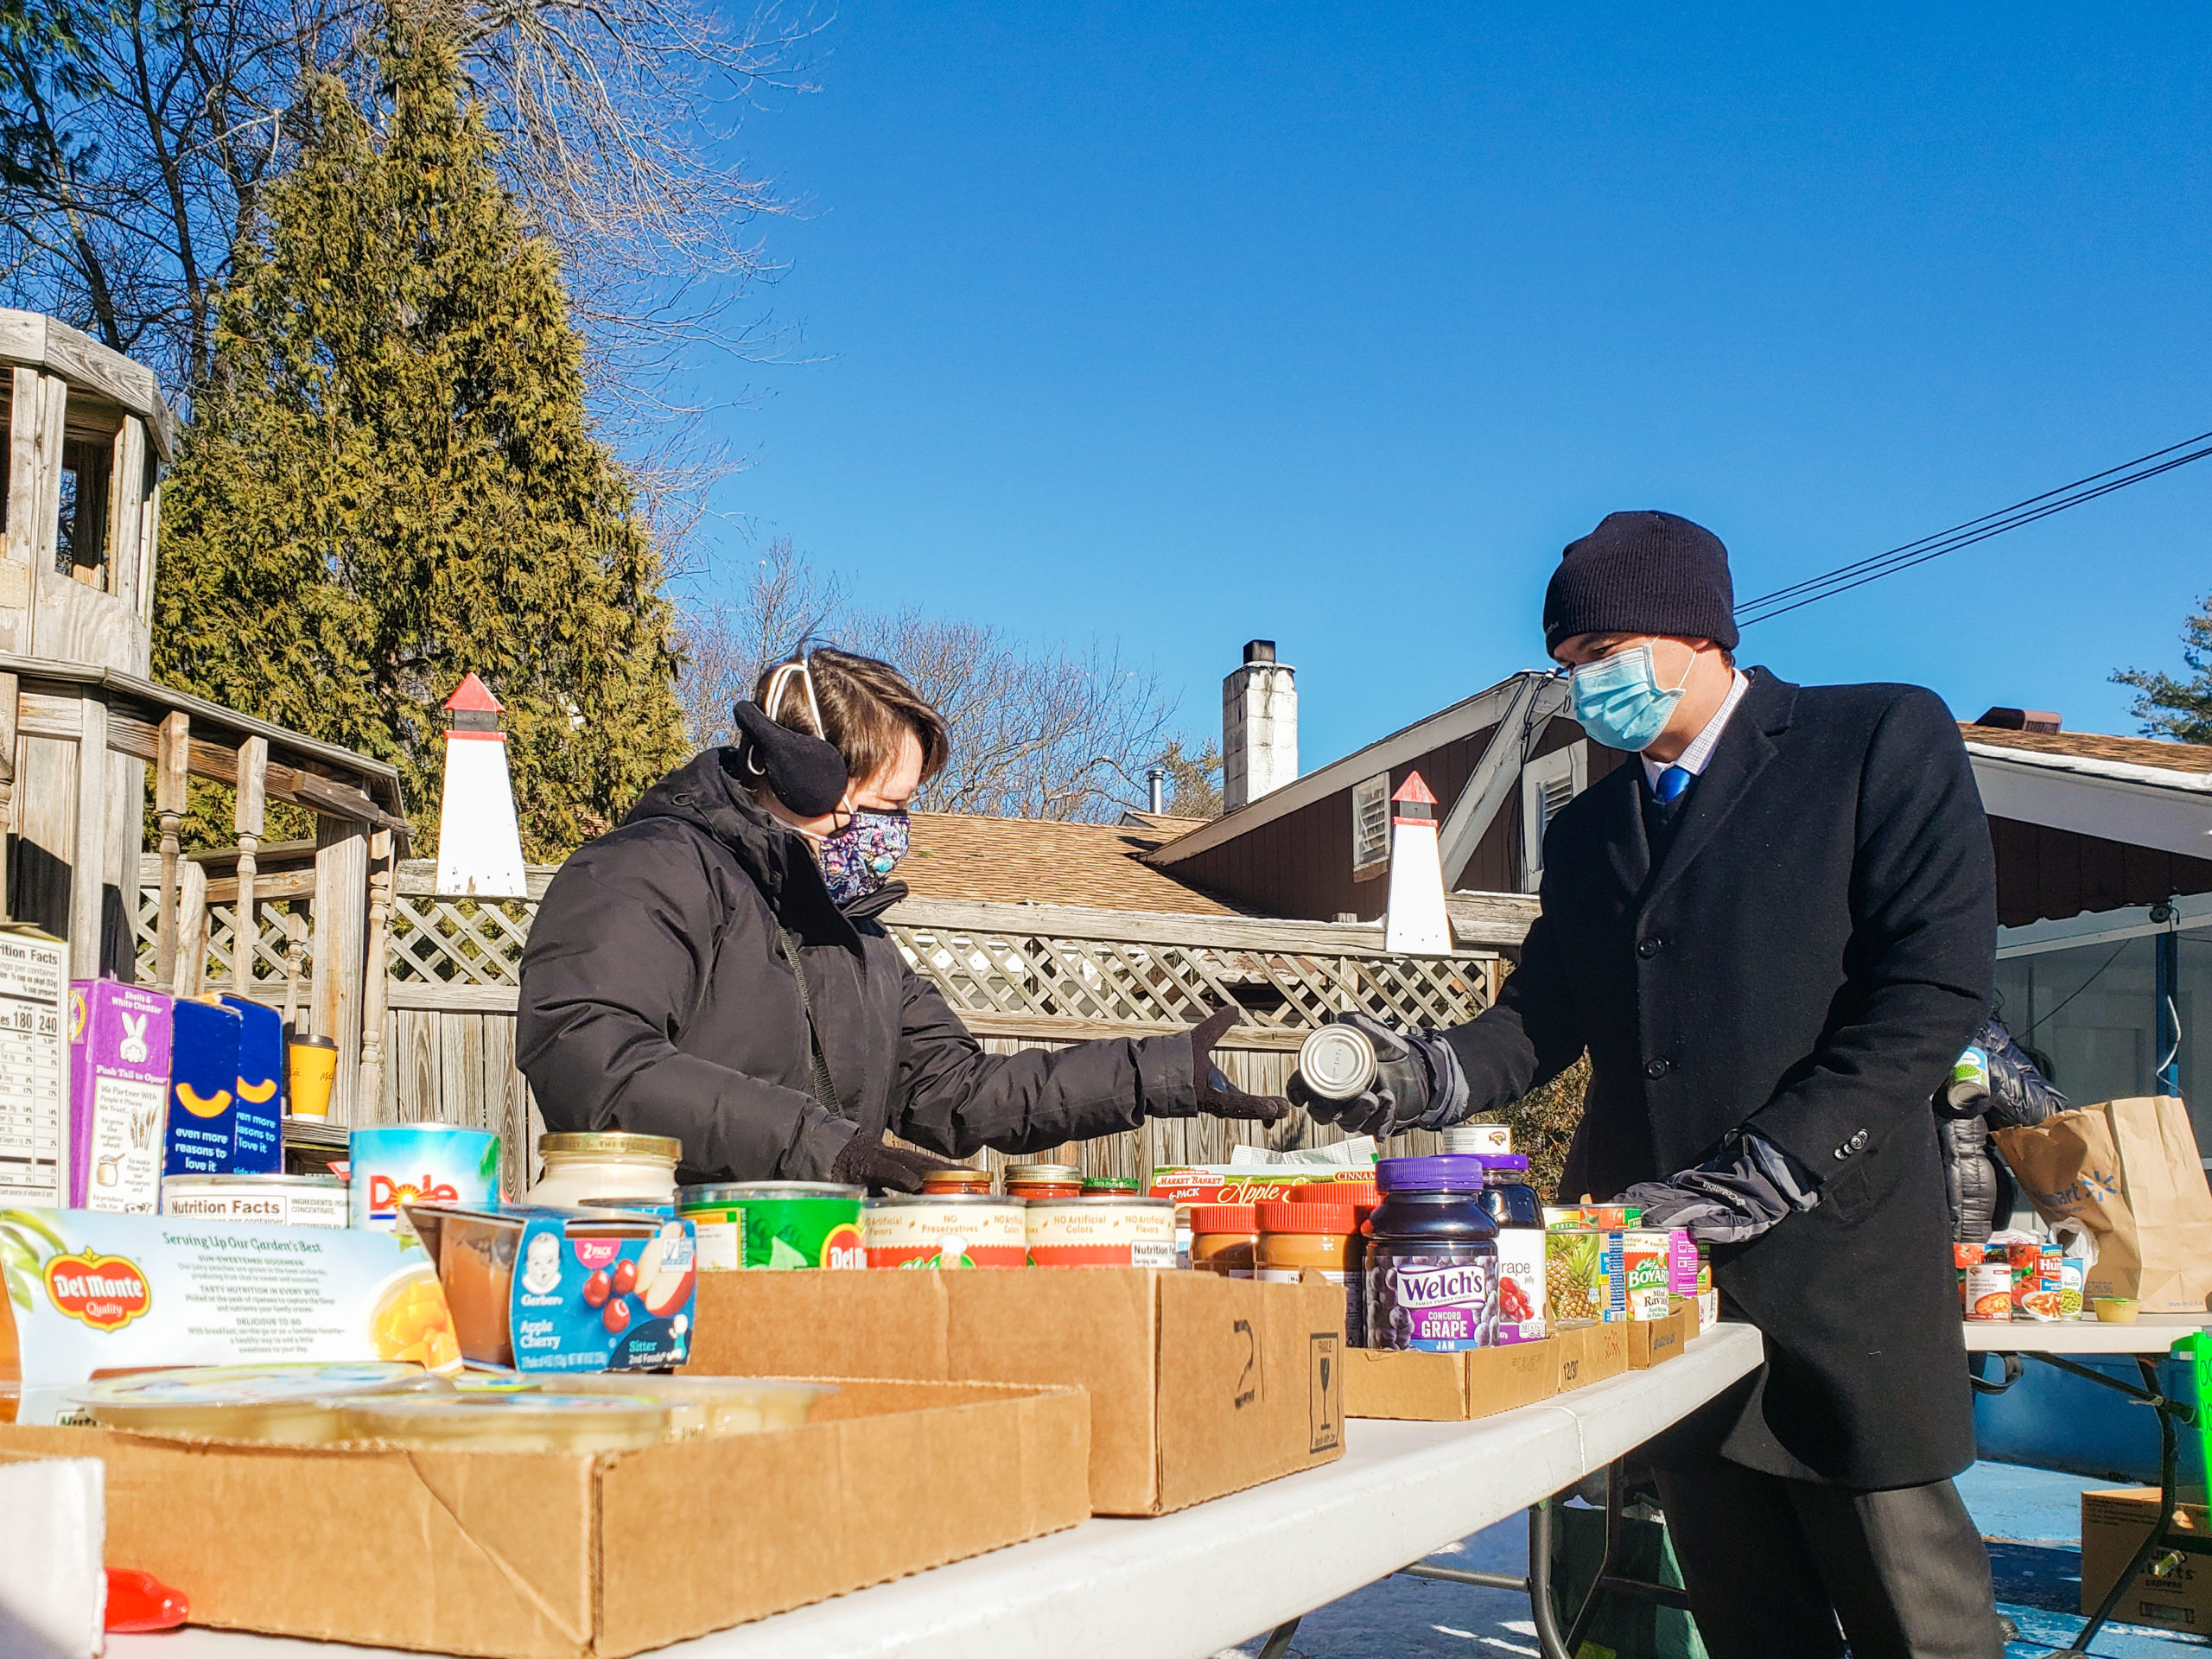 Rep. Sena hands Carrie Ayers of the Lunenburg DTC a can of food at a Lunenburg DTC and Lunenburg Turkey Hill Family Lions Club food drive